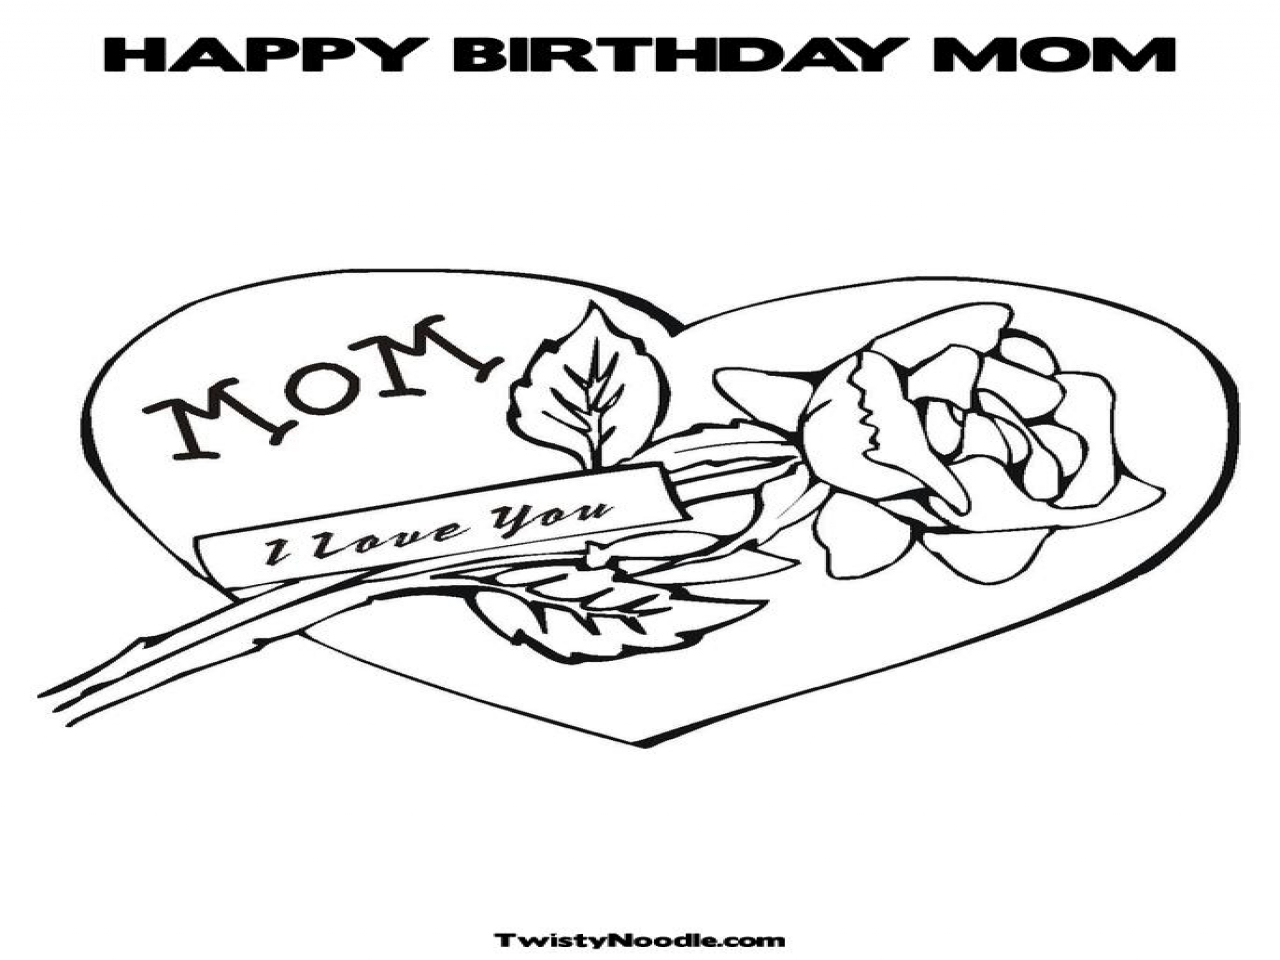 1 Mom Coloring Pages Happy Birthday Grig3 to Print Of Happy Birthday Mom Printable Coloring Pages Printable